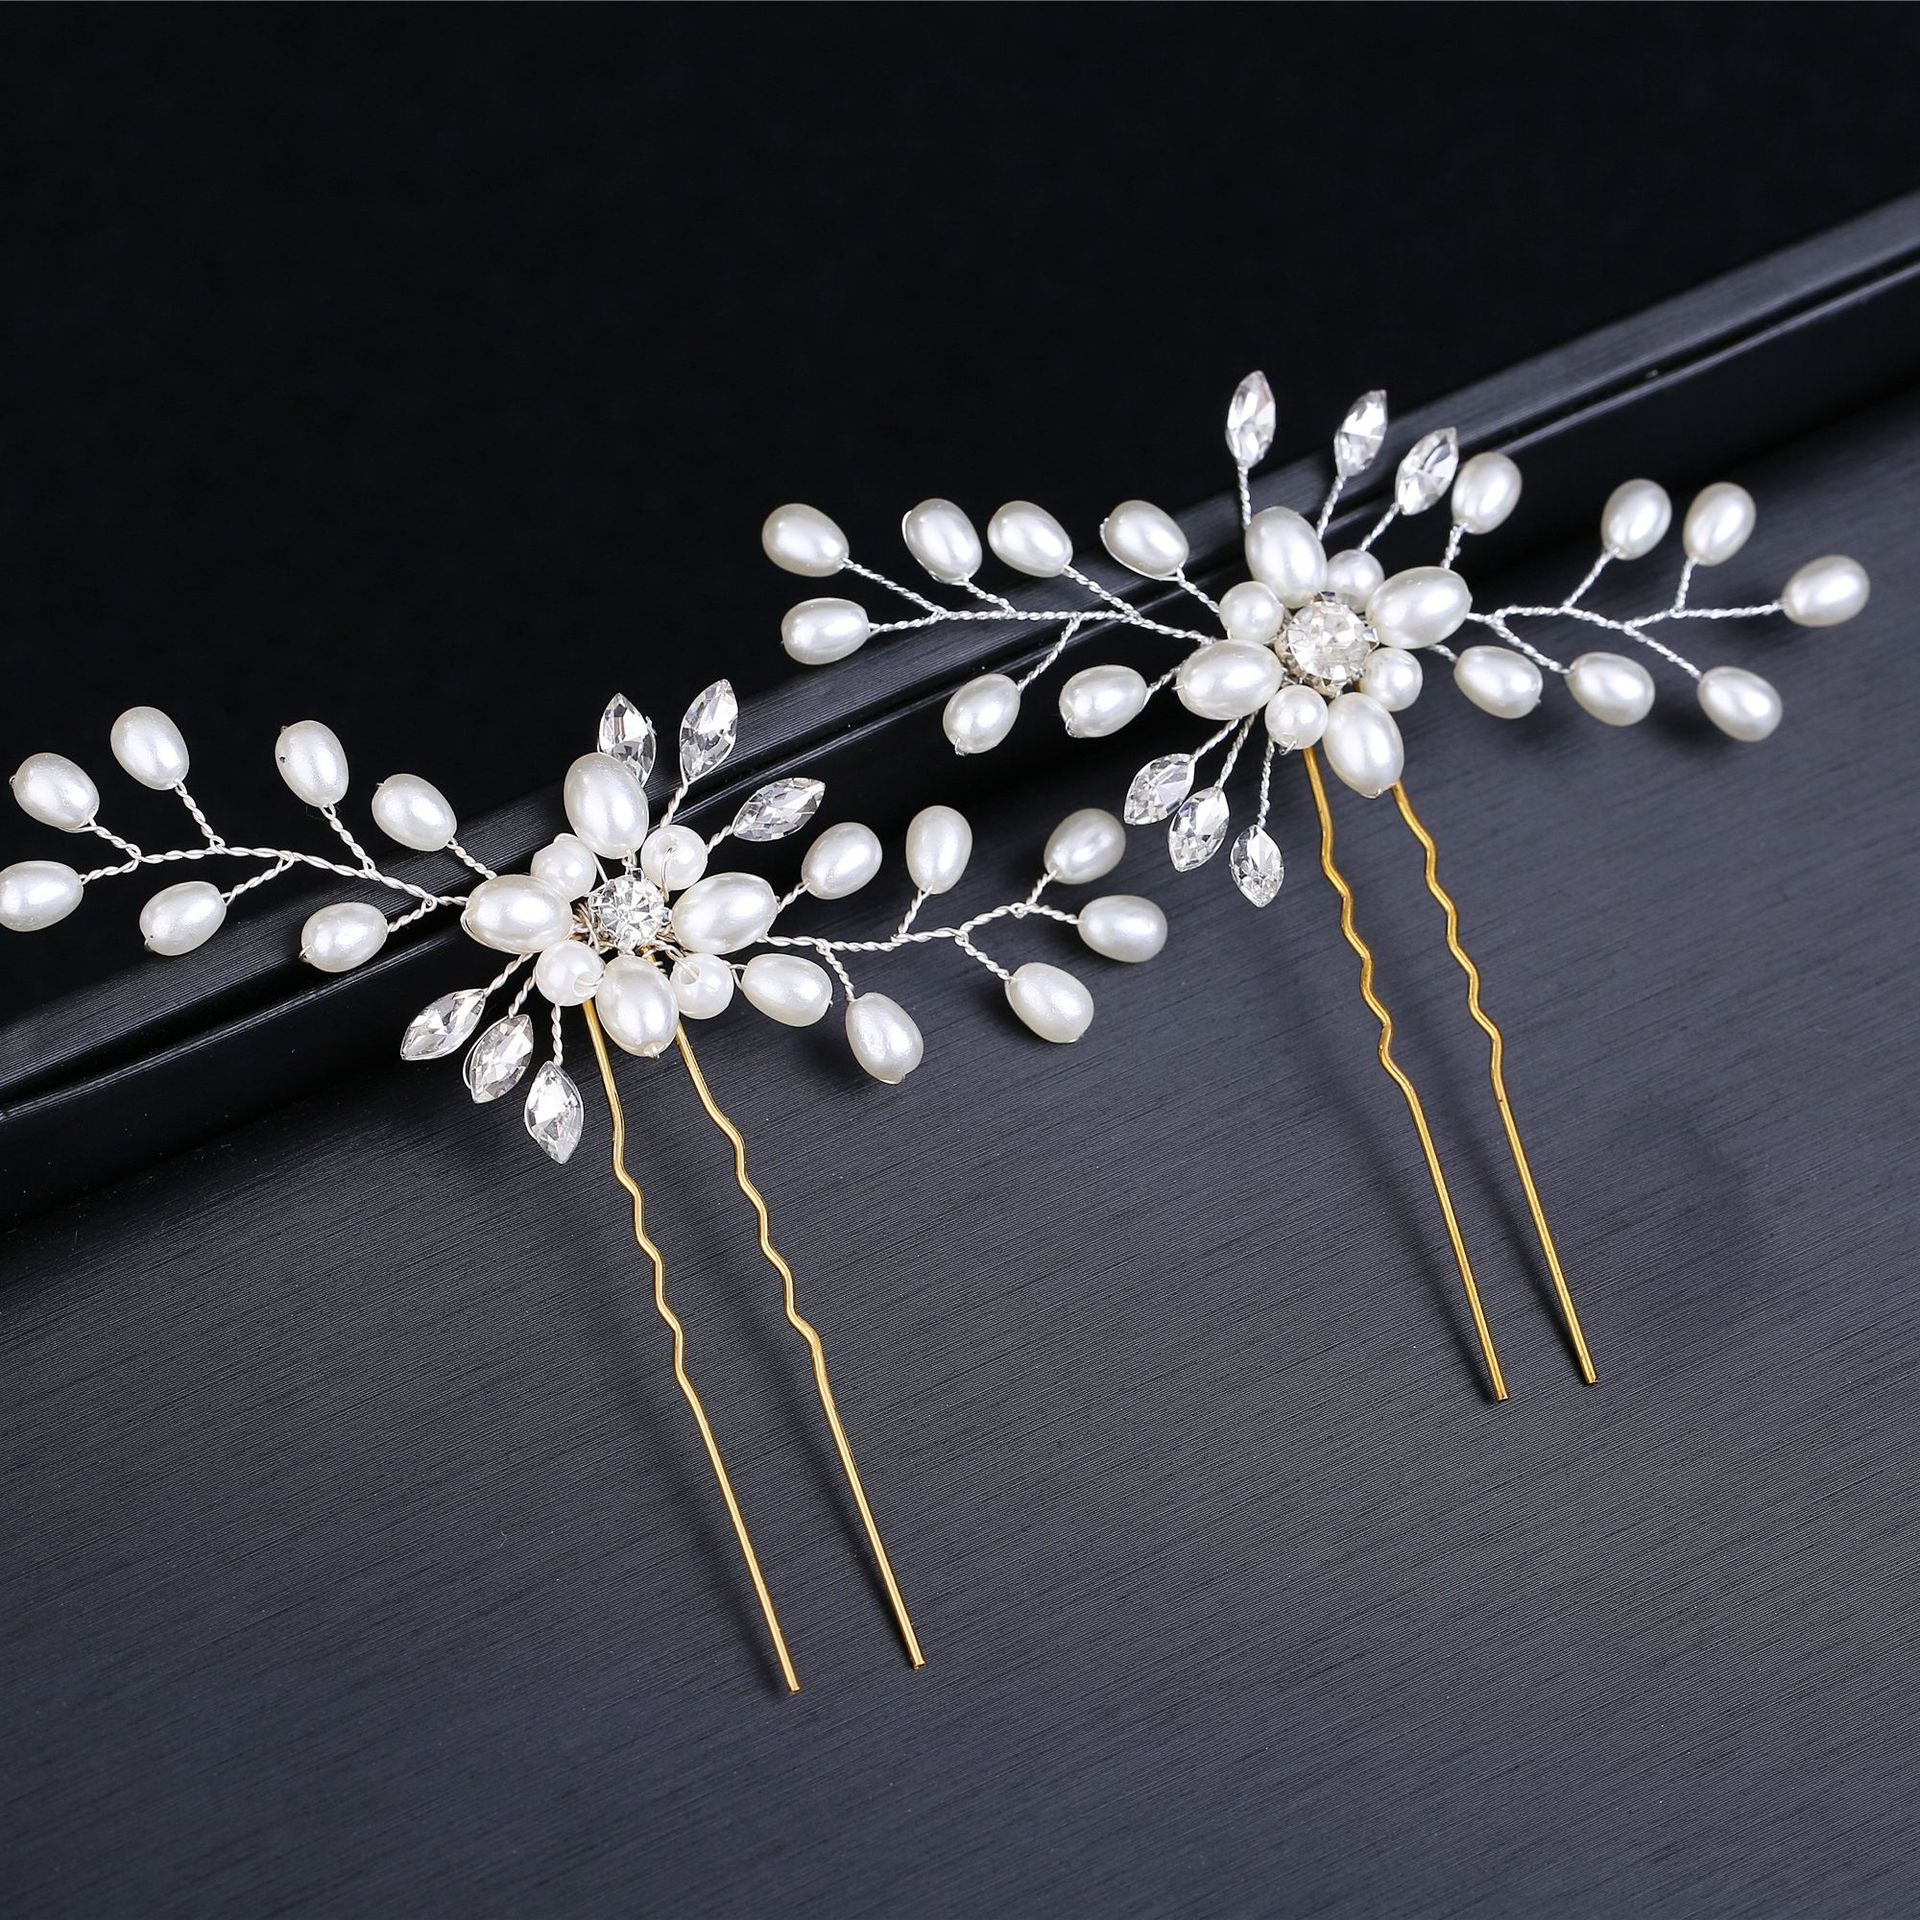 Ebay Cross Border Supply of Goods Korean Style Bride Hairpin Fashion Marriage Ornament Hairpin Bride Wedding Dress Modeling Acce(China)